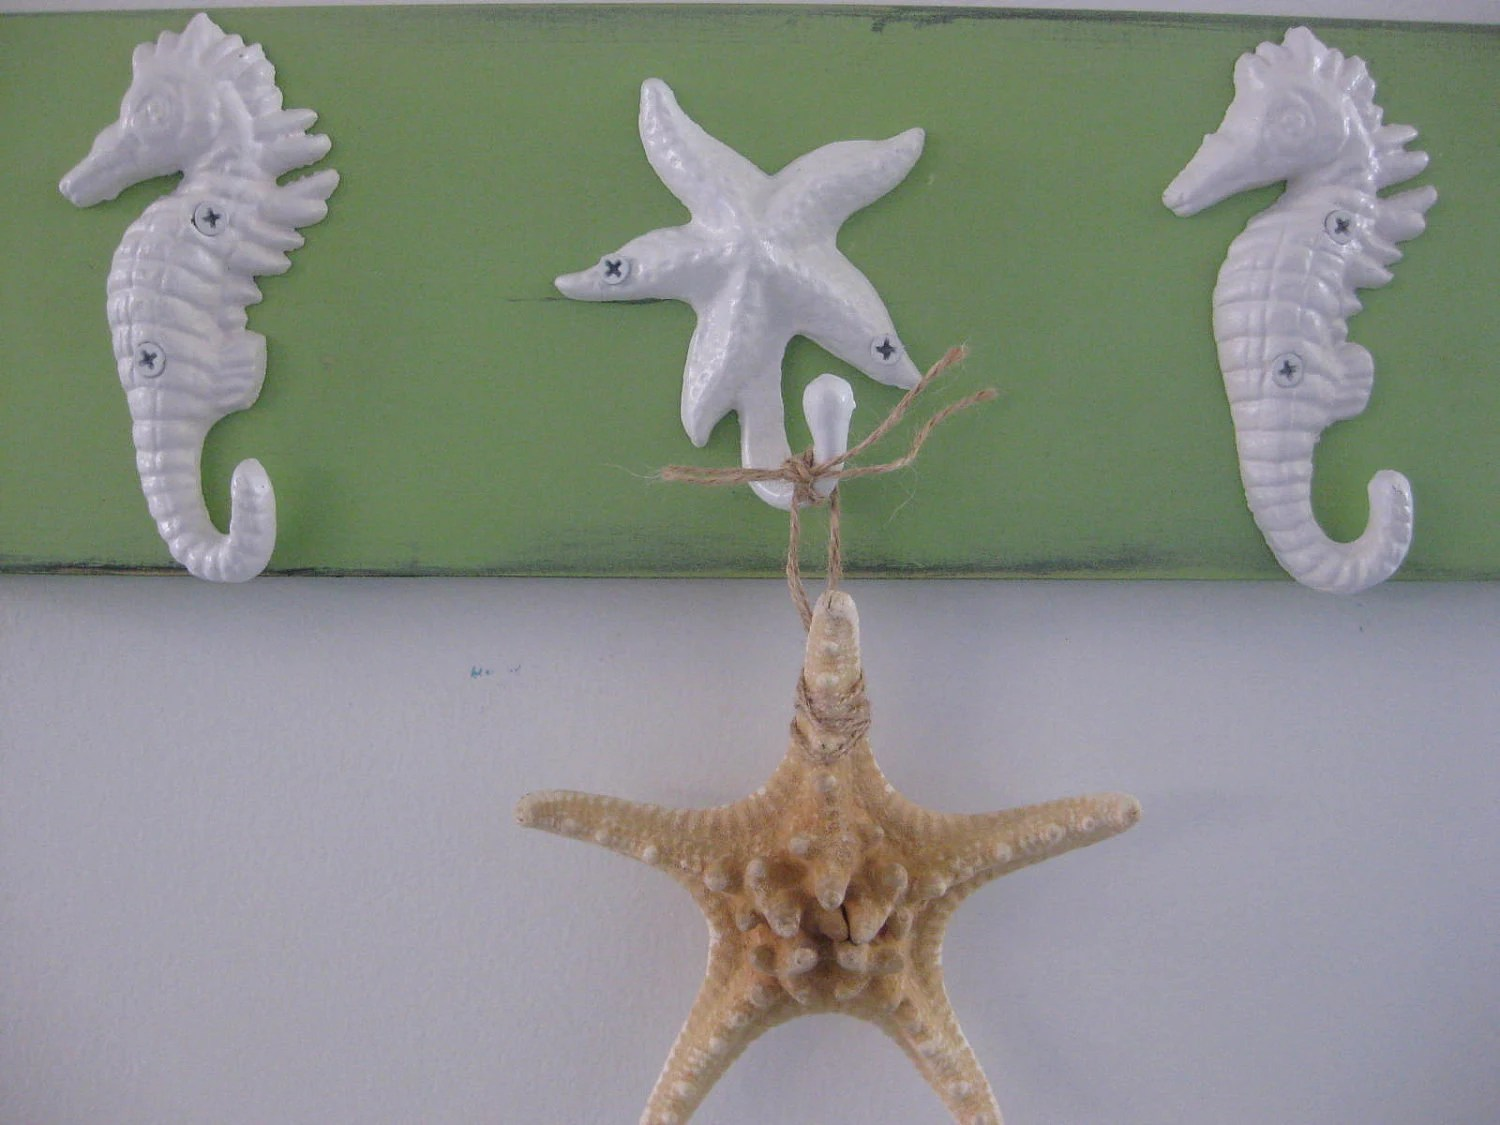 Nautical House Decor Pool Towel Rack Hot Tub Outside Shower Starfish Seahorses Towel